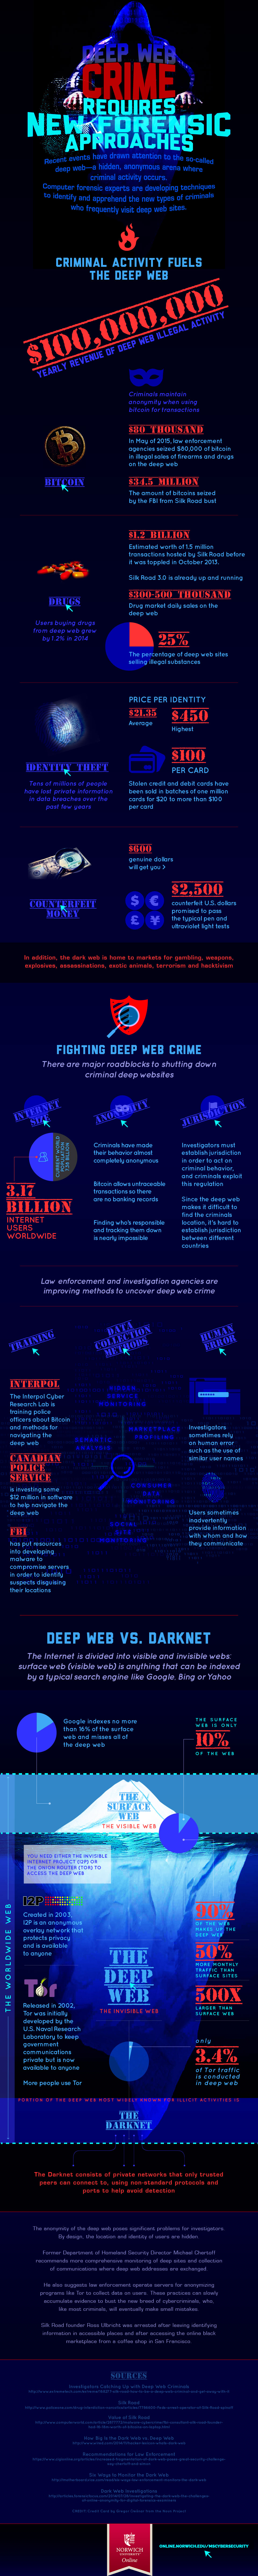 infographic on deep web crime and new forensic approaches